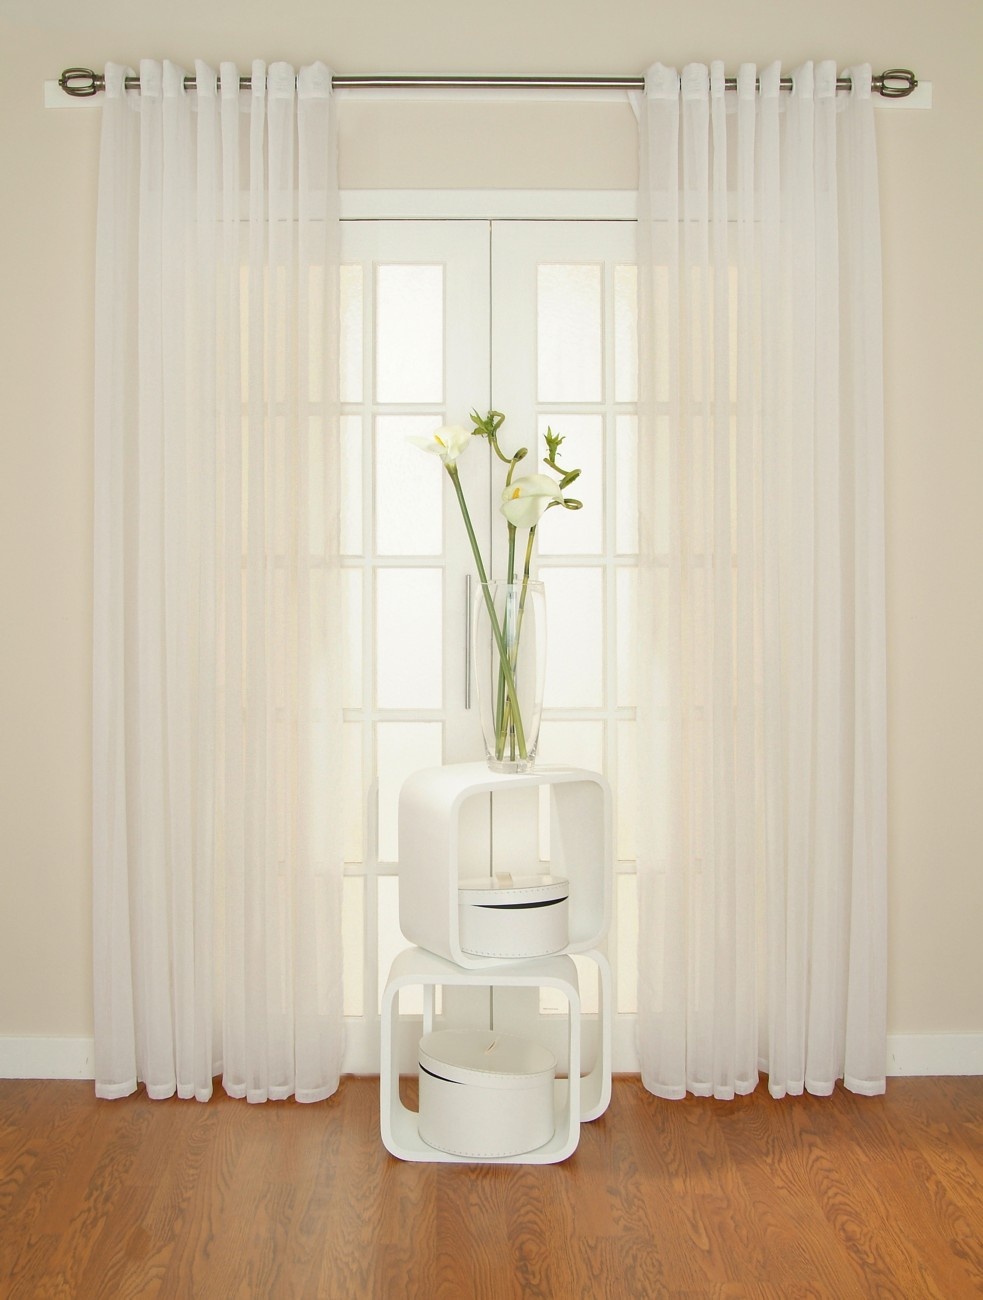 Decorating - Window Treatments - Home & Family Network